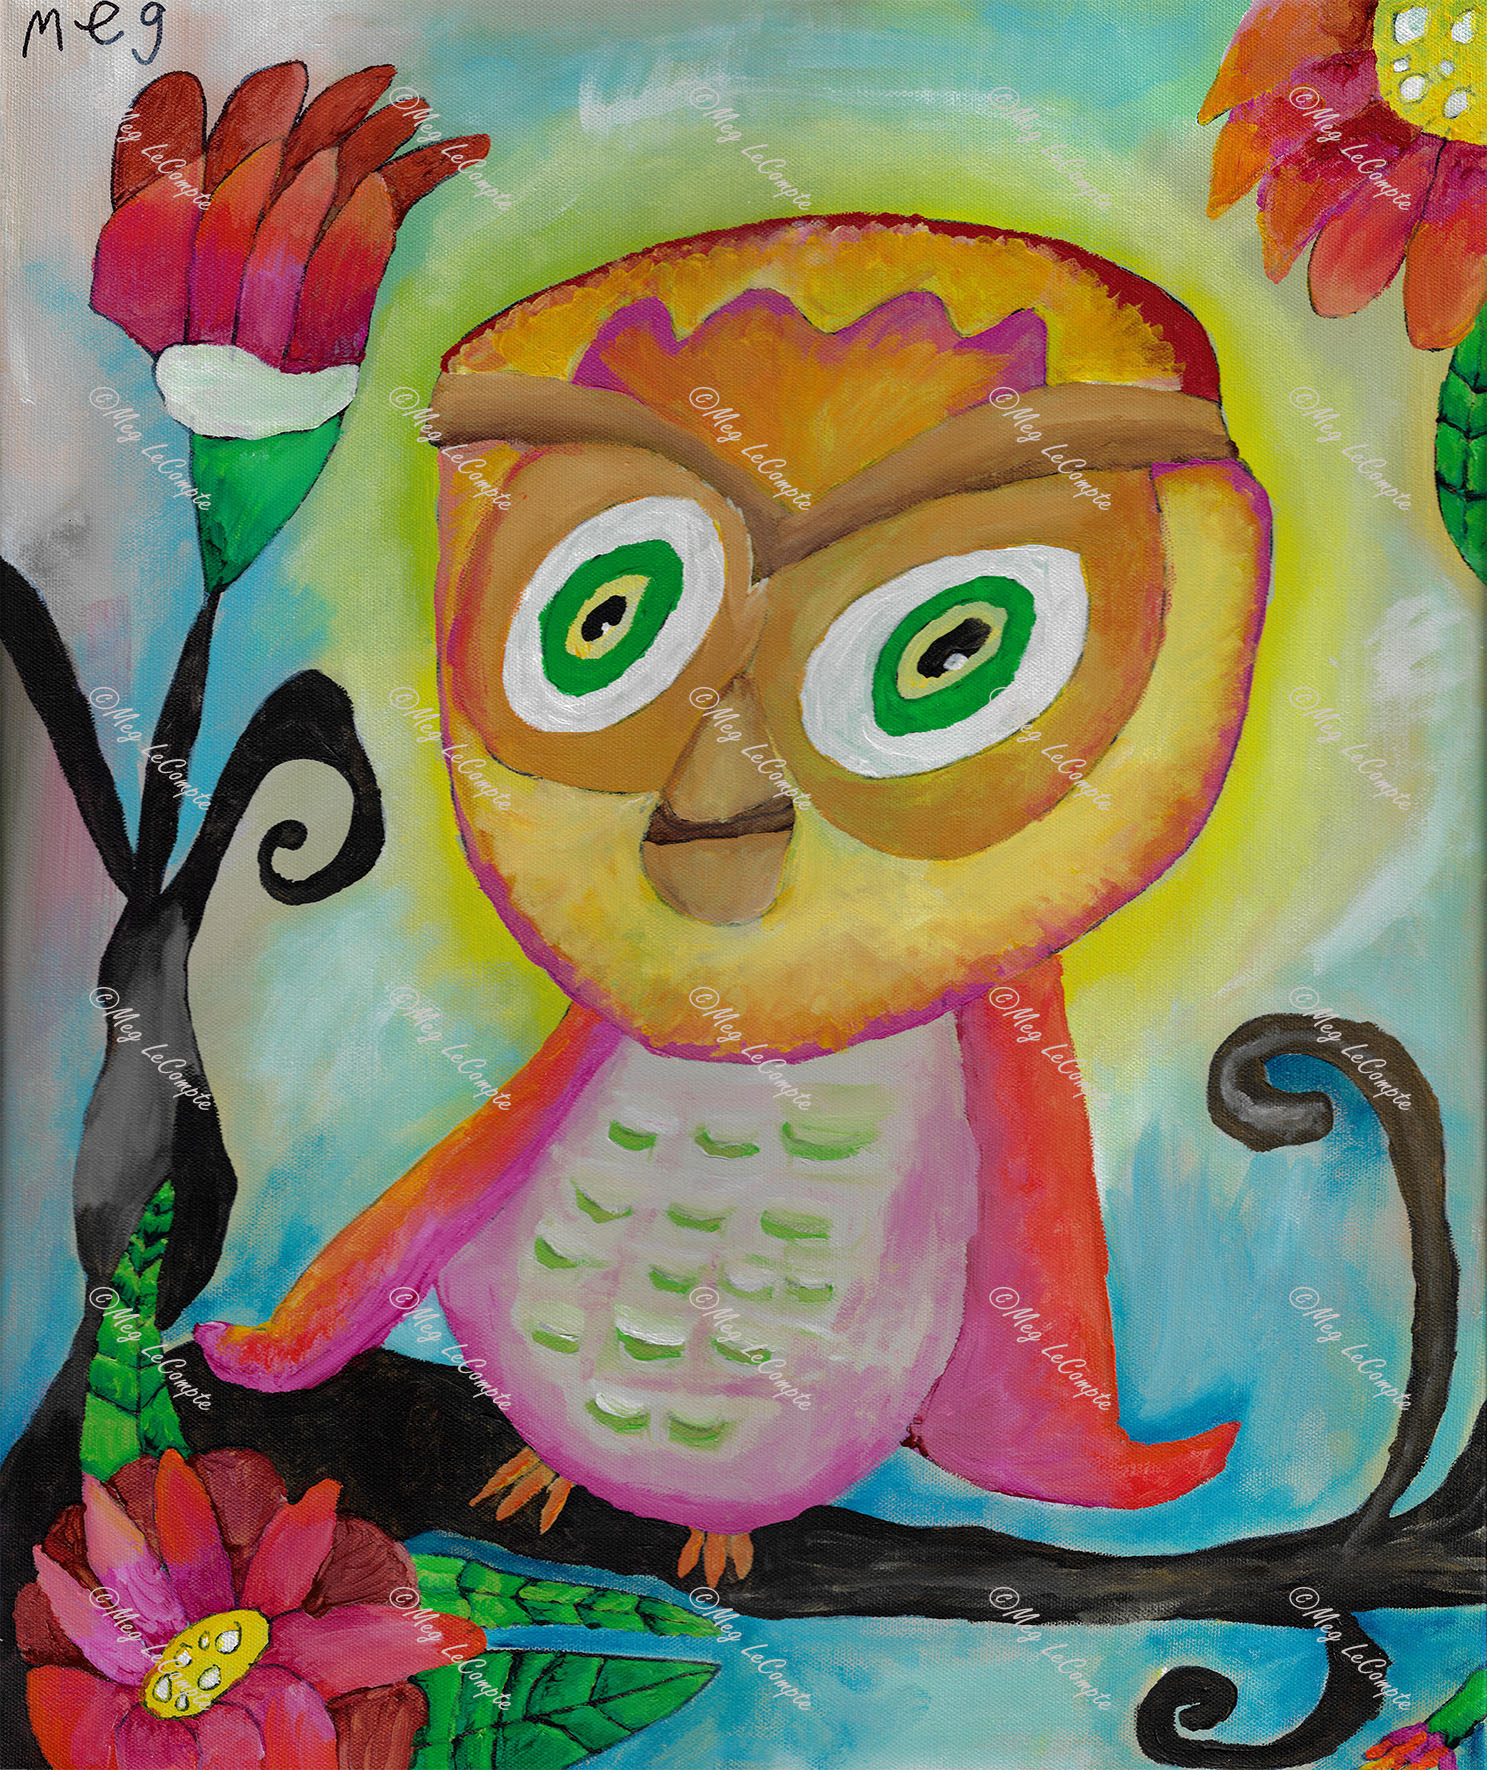 The Magical Owl